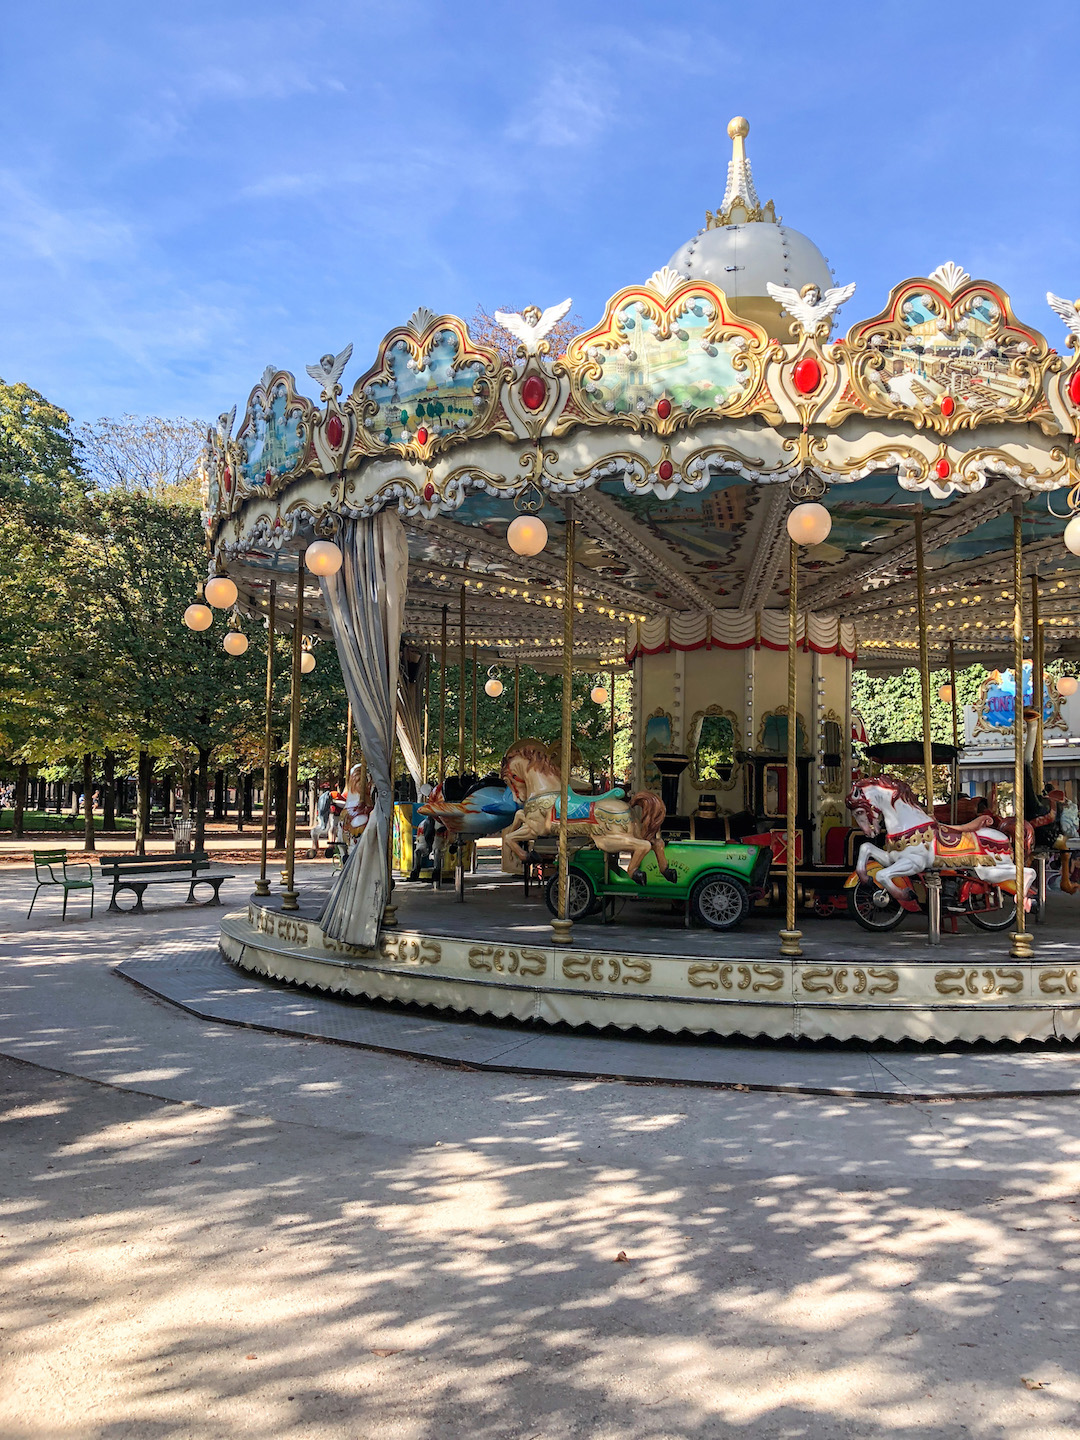 Her_Travel_Edit_Paris_Tuileries_Garden_Carousel